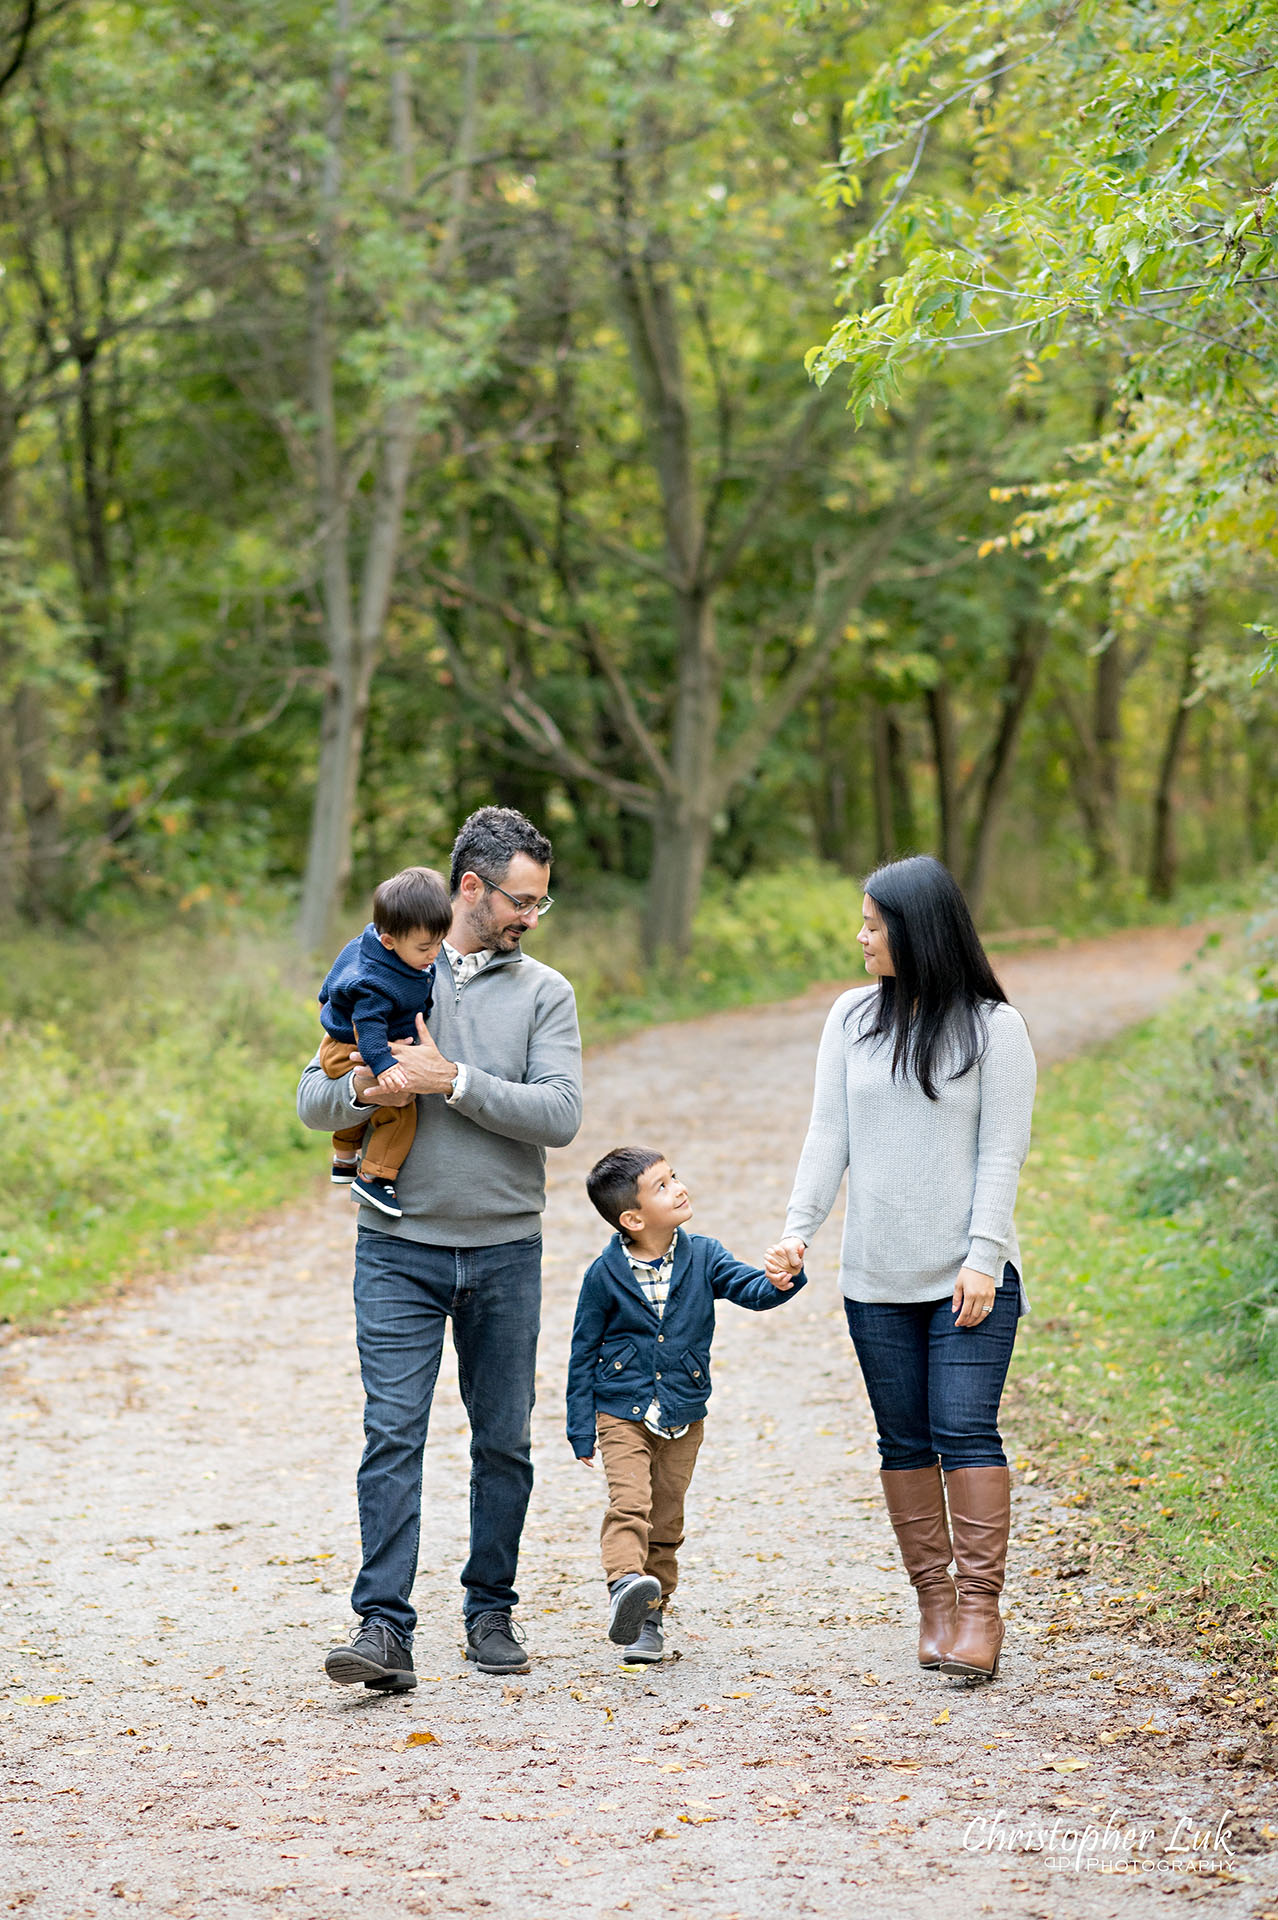 Christopher Luk Family Photographer Toronto Markham Unionville Autumn Fall Leaves Natural Candid Photojournalistic Sons Brothers Baby Boys Father Dad Mother Mom Motherhood Fatherhood Holding Hands Walking Together Trail Pathway Forest